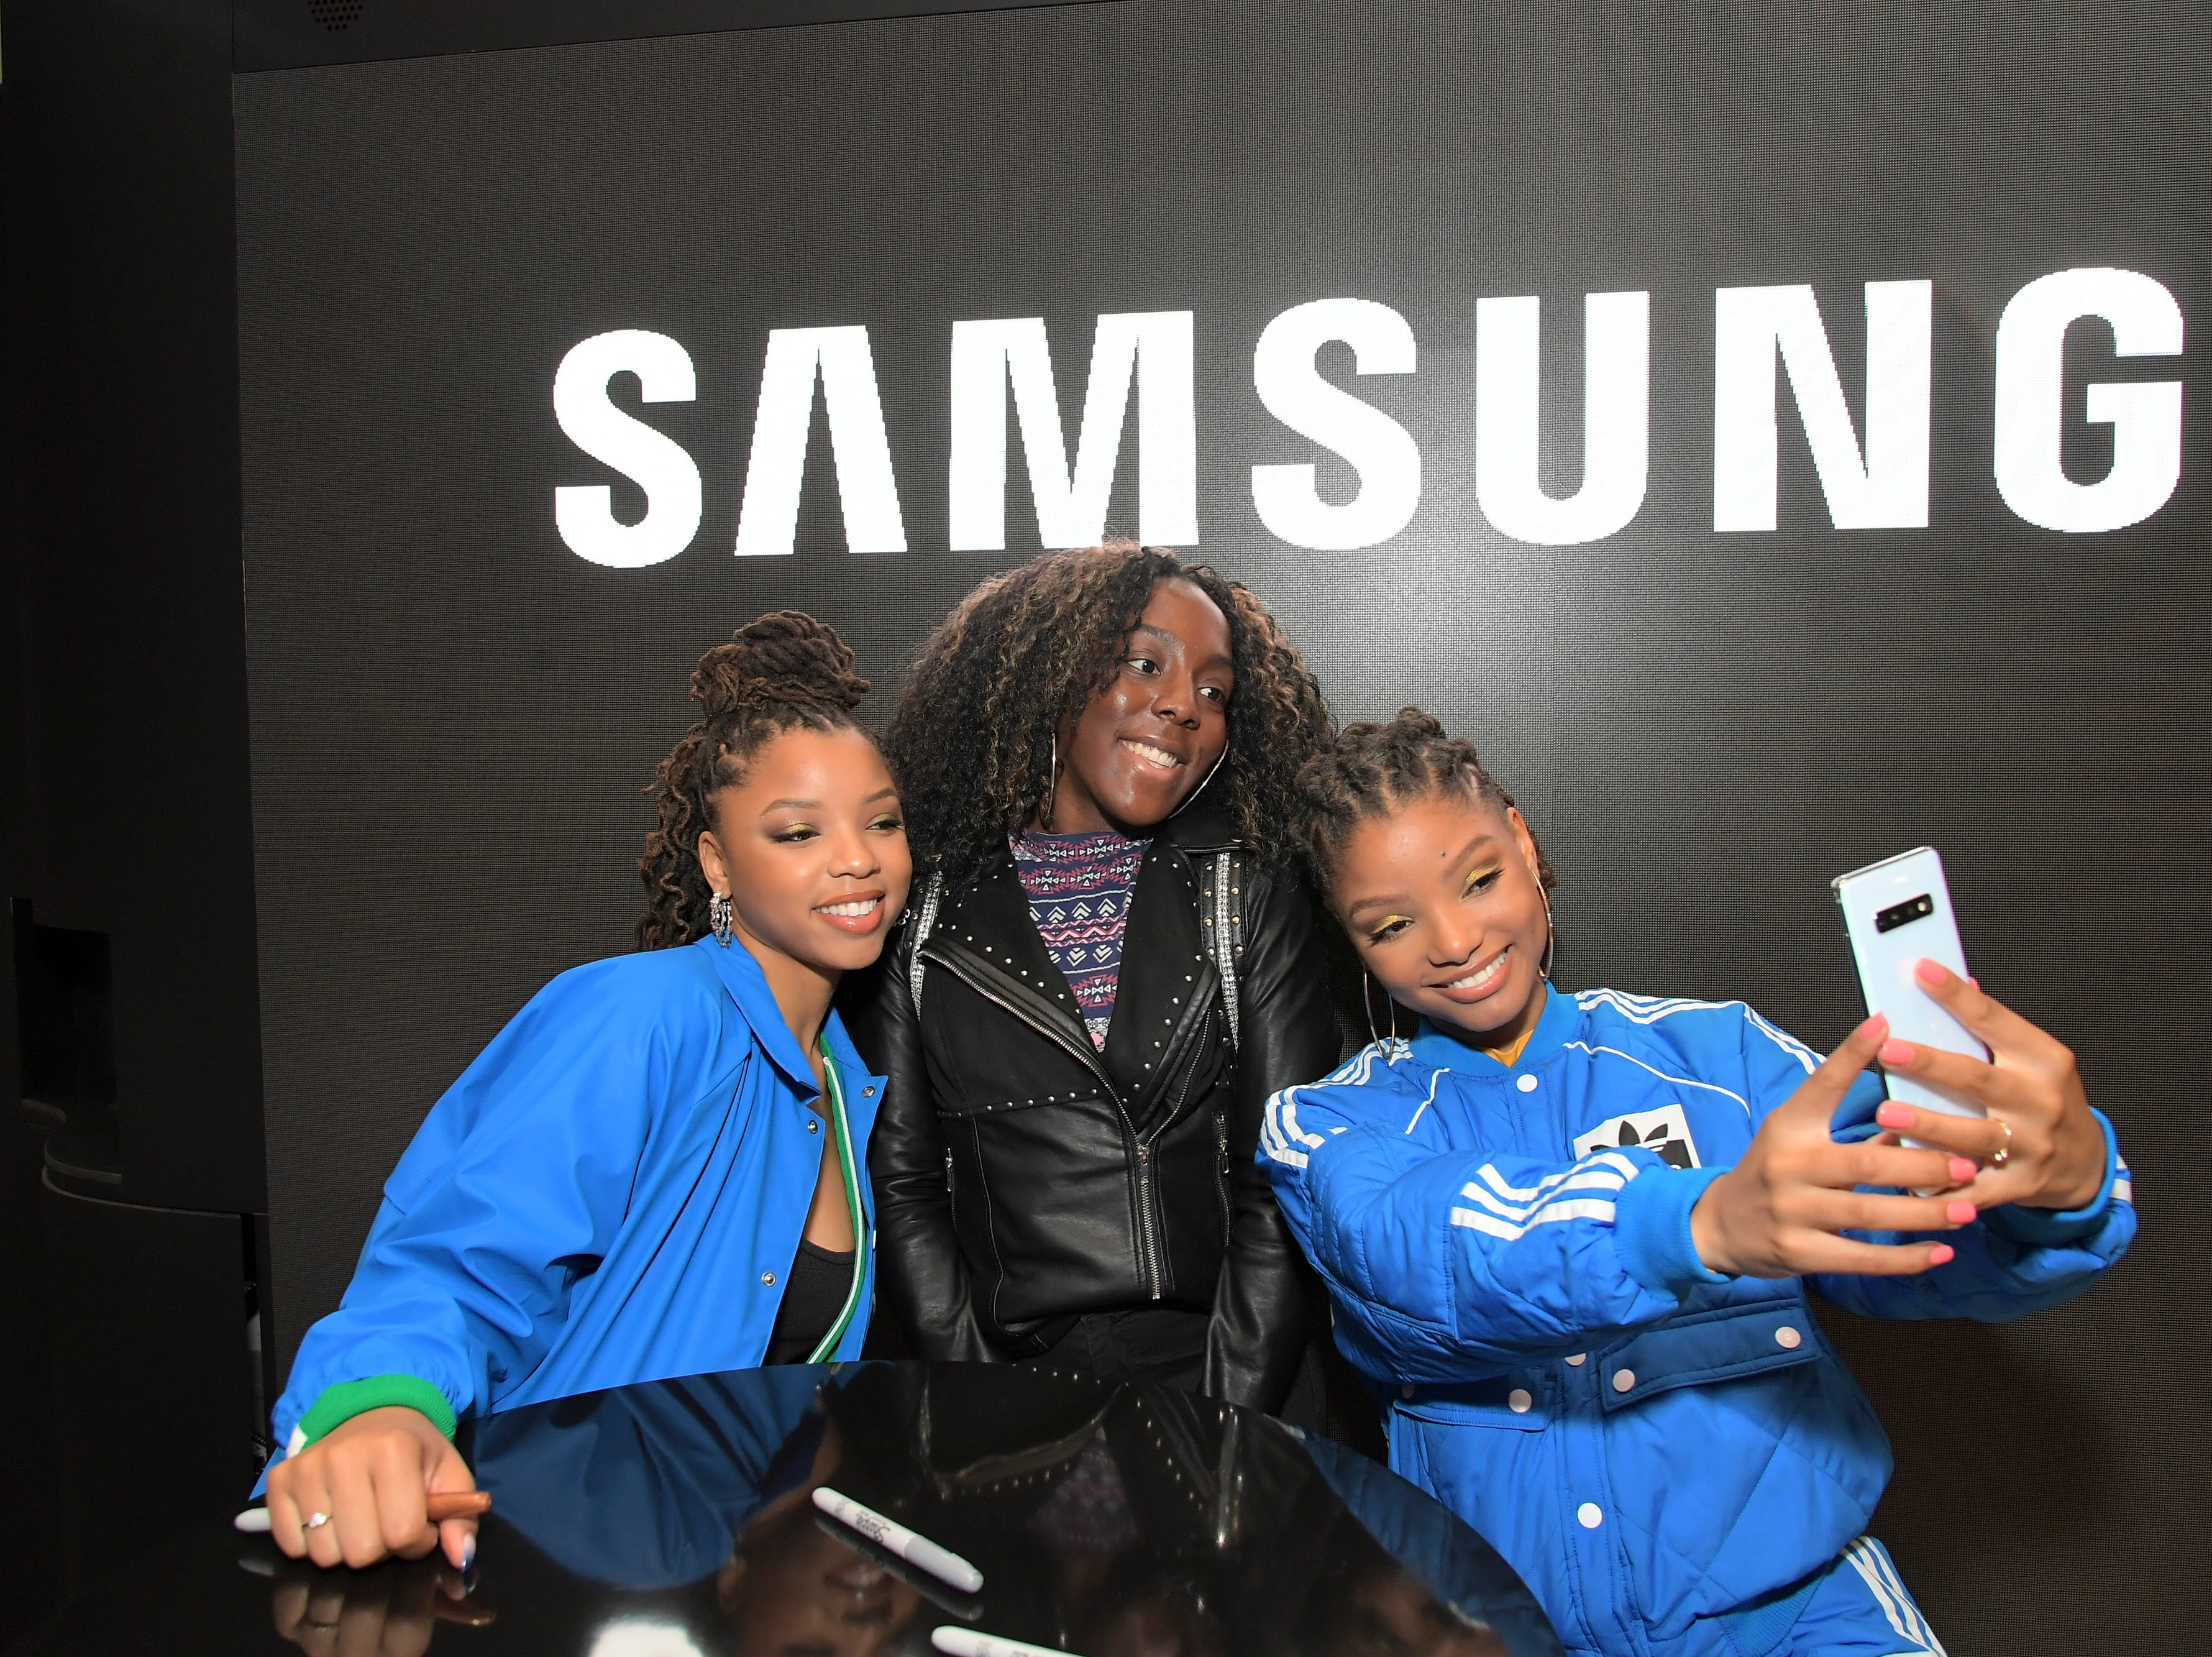 GLENDALE, CA - FEBRUARY 20:  Samsung fans pose for a selfie with Chloe x Halle using the all-new Samsung Galaxy S10+ at the Samsung Experience Store at The Americana at Brand on February 20, 2019 in Glendale, California.  (Photo by Charley Gallay/Getty Images for Samsung) ORG XMIT: 775301908 ORIG FILE ID: 1126606992